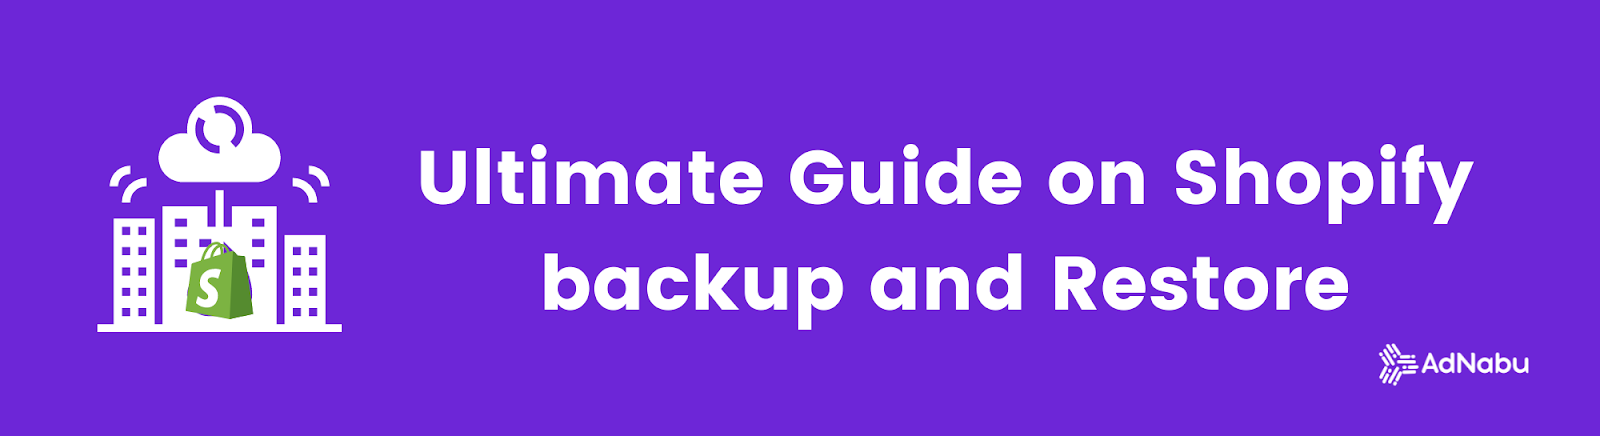 Ultimate Guide on Shopify backup and Restore